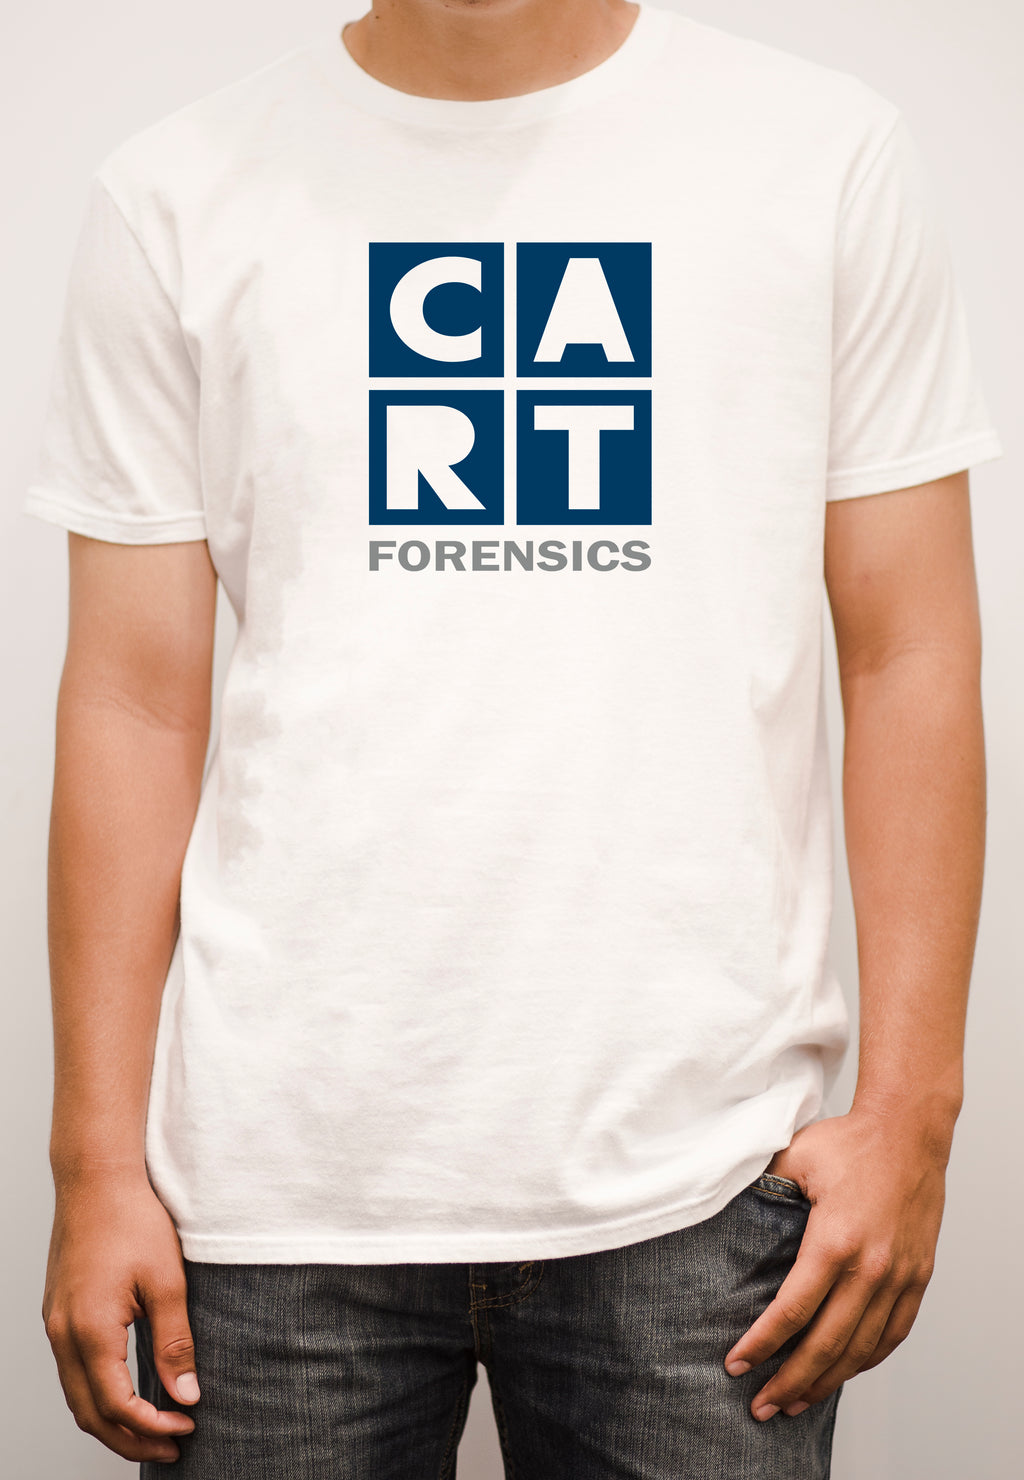 Short sleeve t-shirt - forensics grey/blue